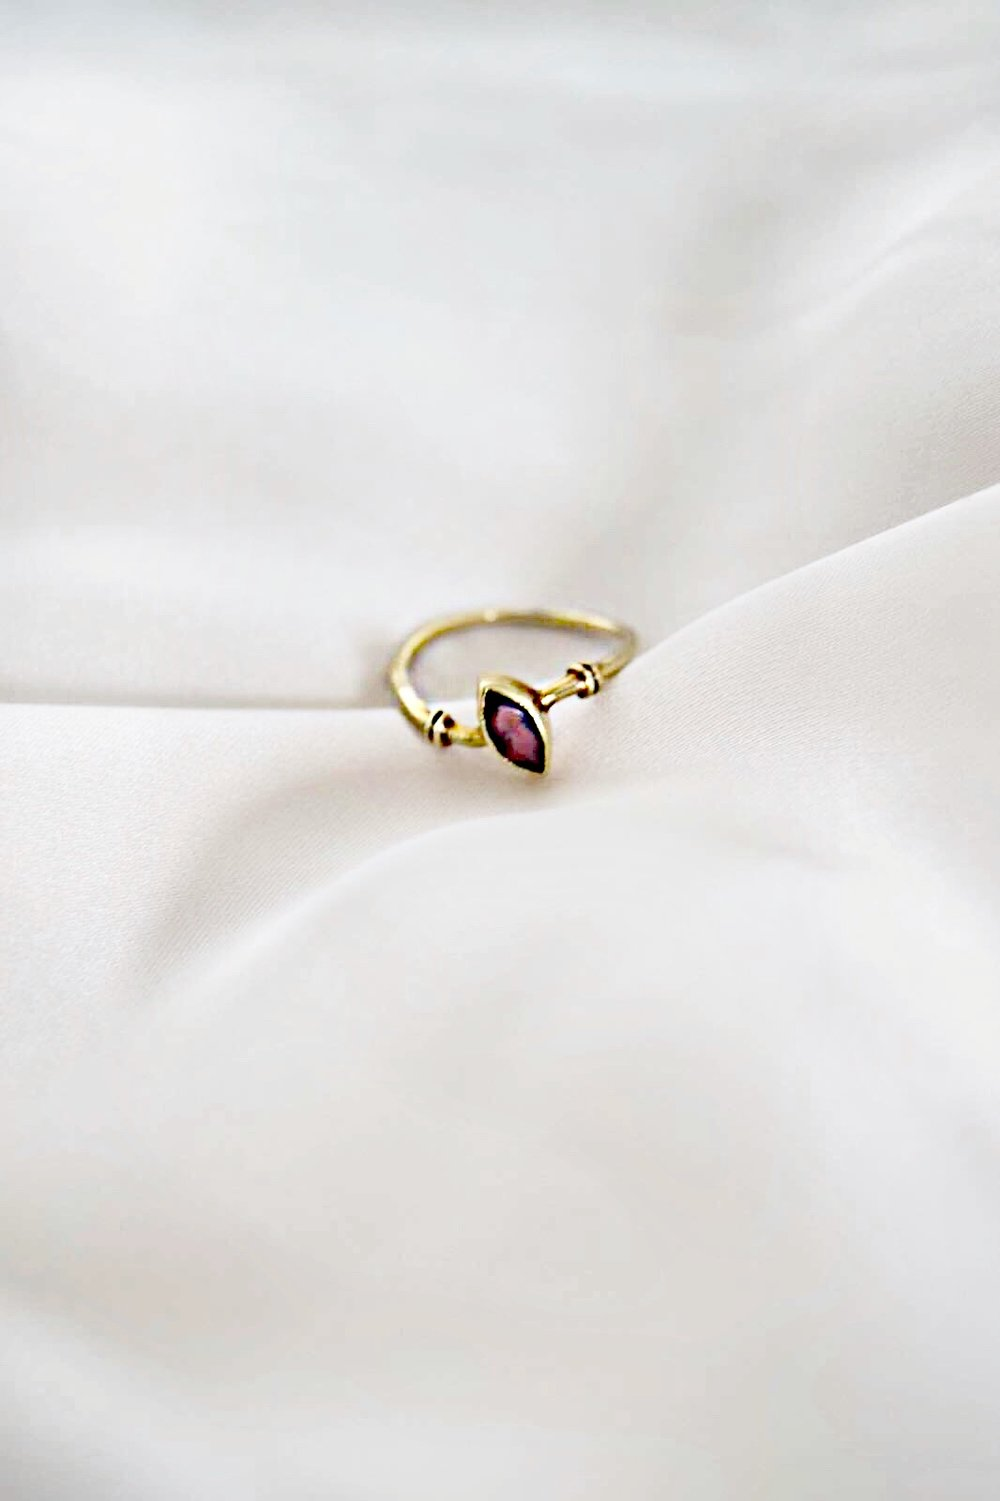 - When my great grandma died, one of the things she left behind was this cute little ring. According to my grandma it is real gold and the little stone is a real ruby. It is a sentimental piece, that I don't want to miss. And even though it's slightly bent, it's still and always will be perfect for me.